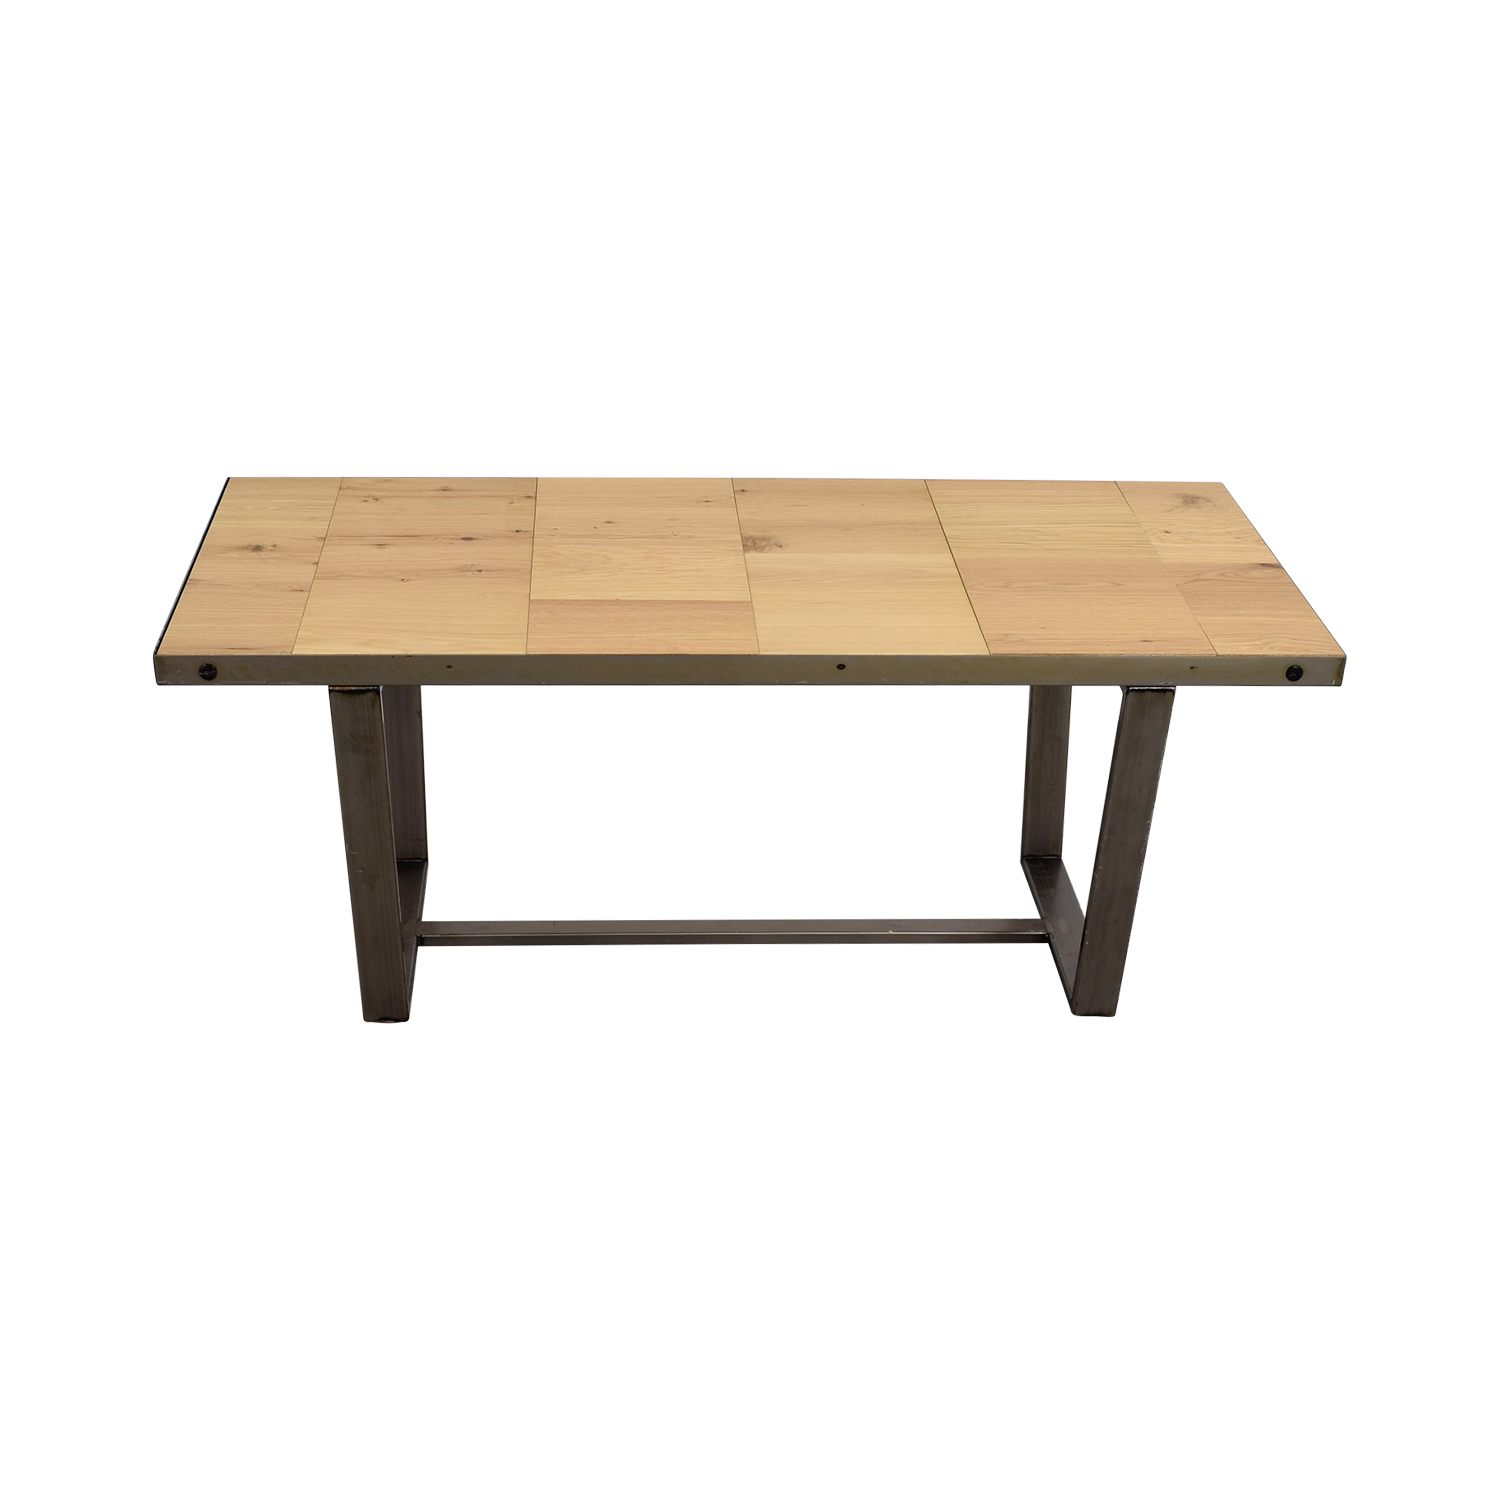 Patrick Cain Beech and Metal Dining Table Patrick Cain